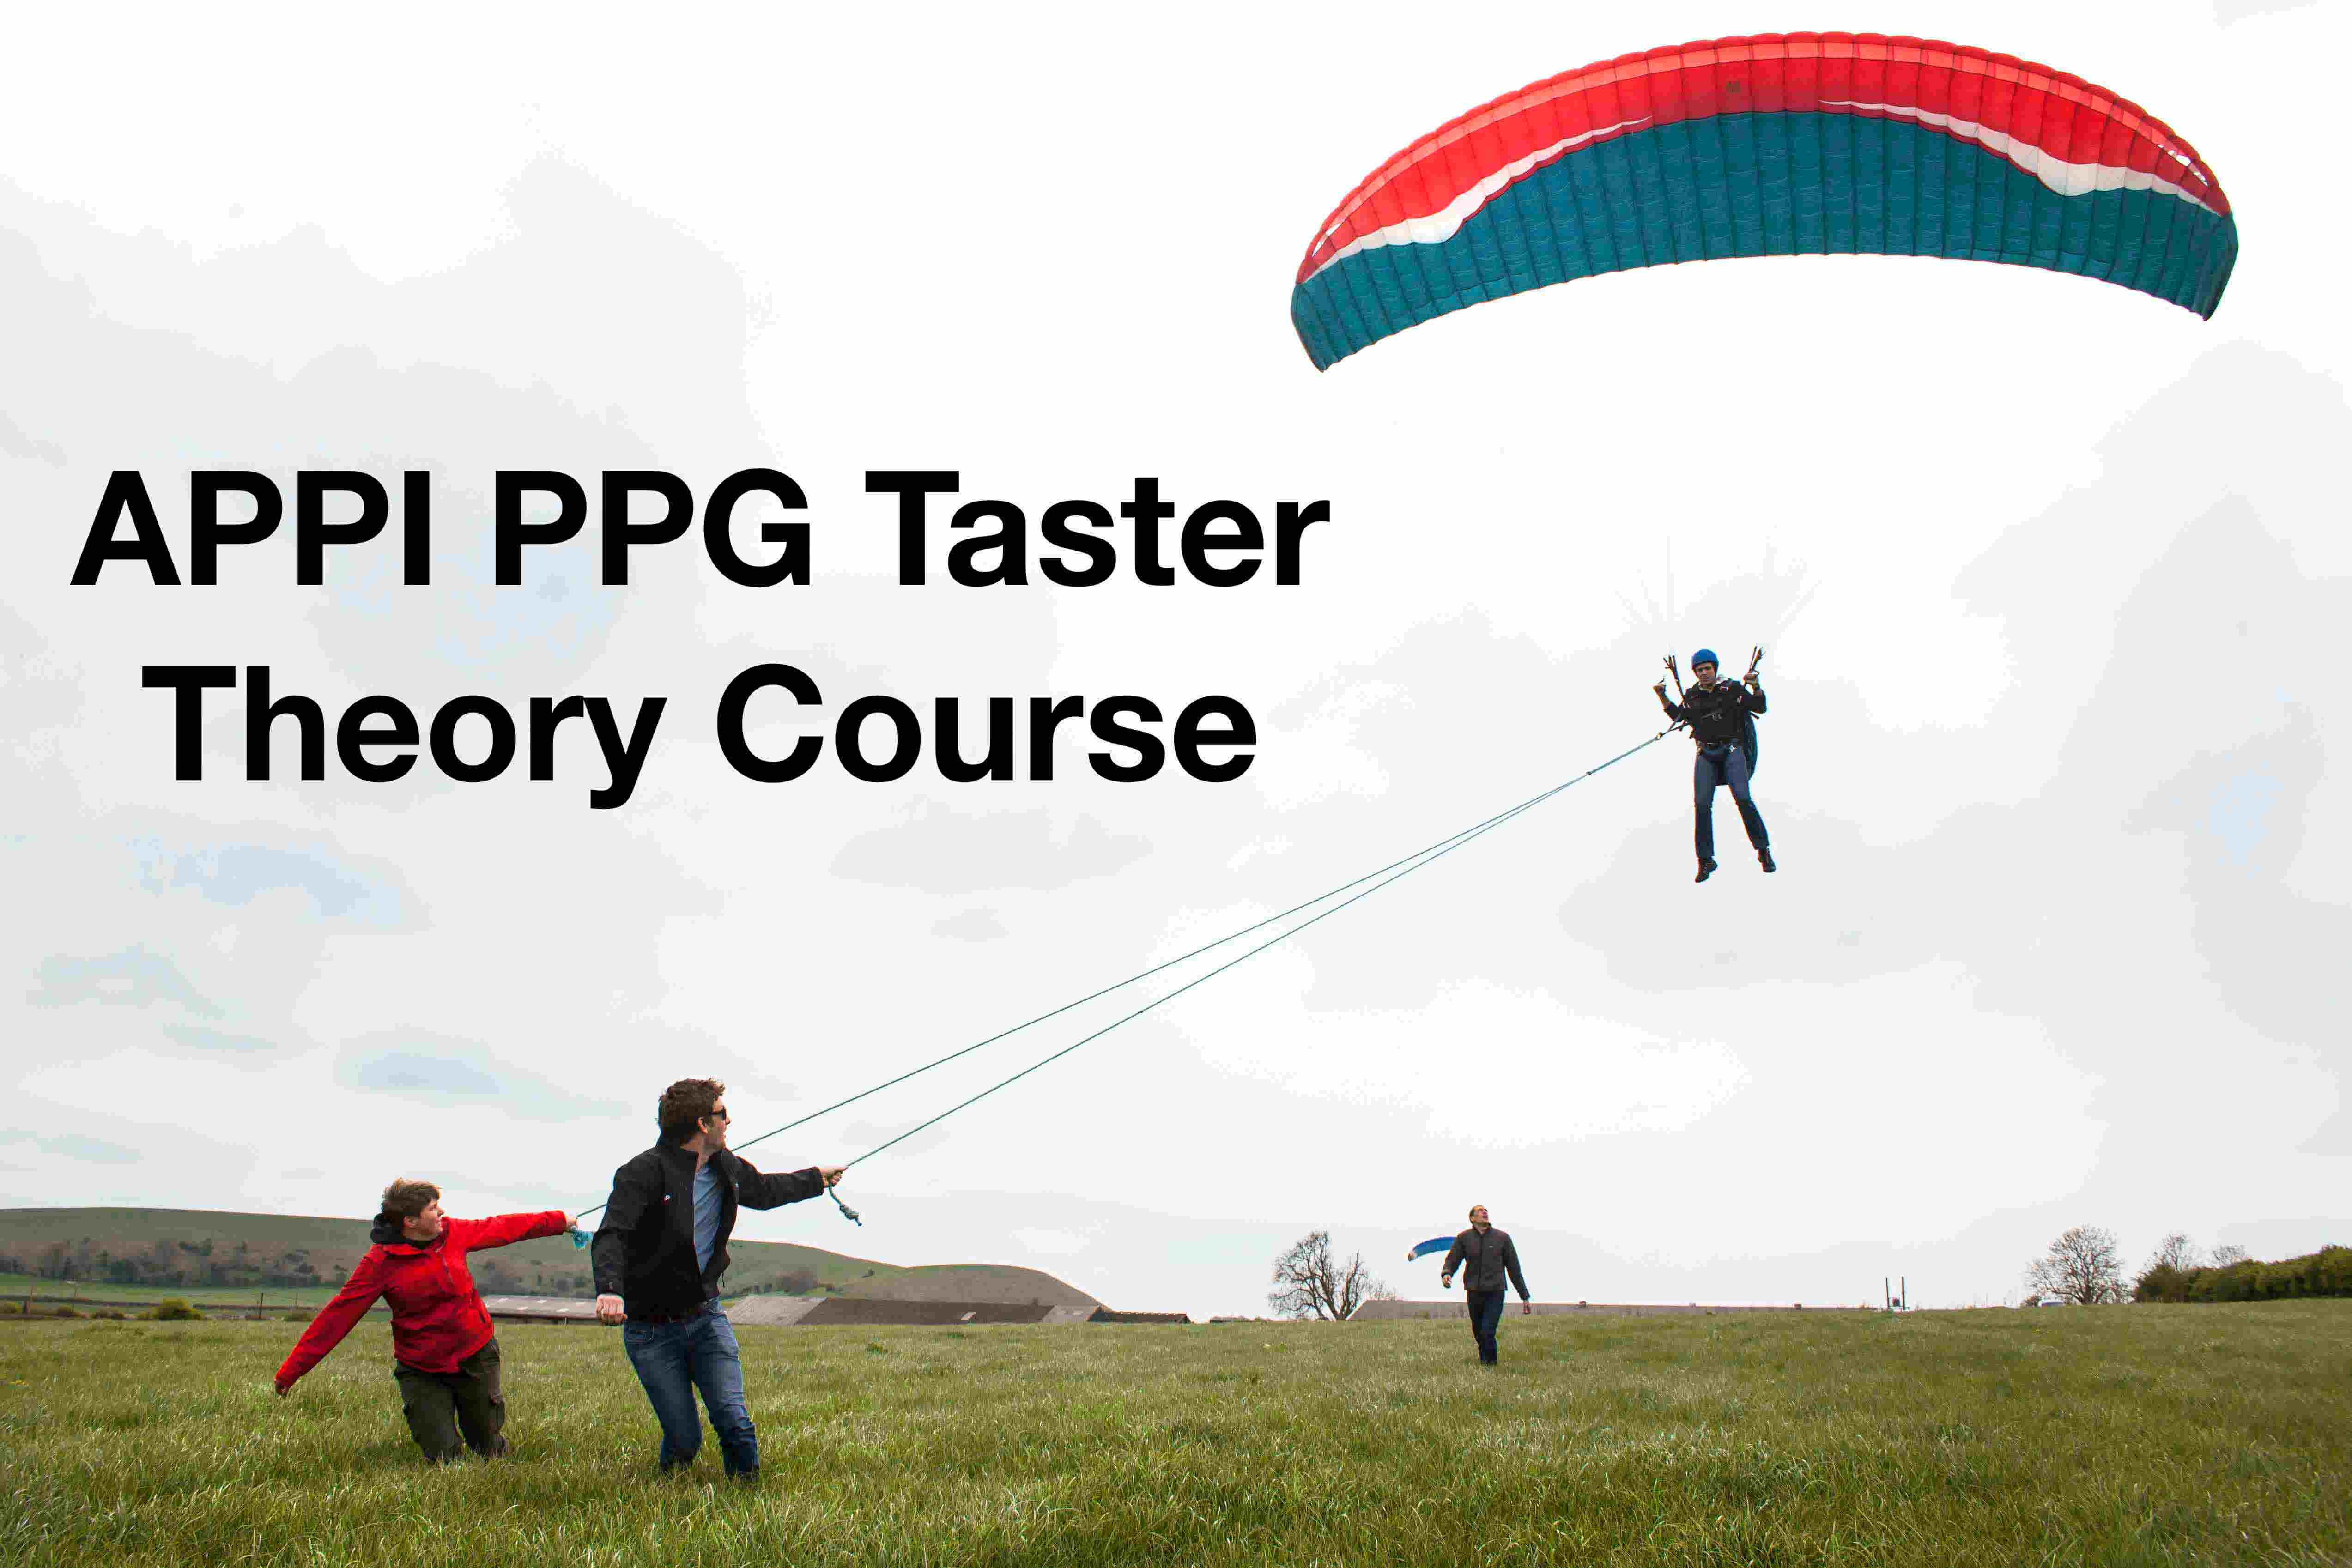 SkySchool's APPI PPG Taster Theory Course